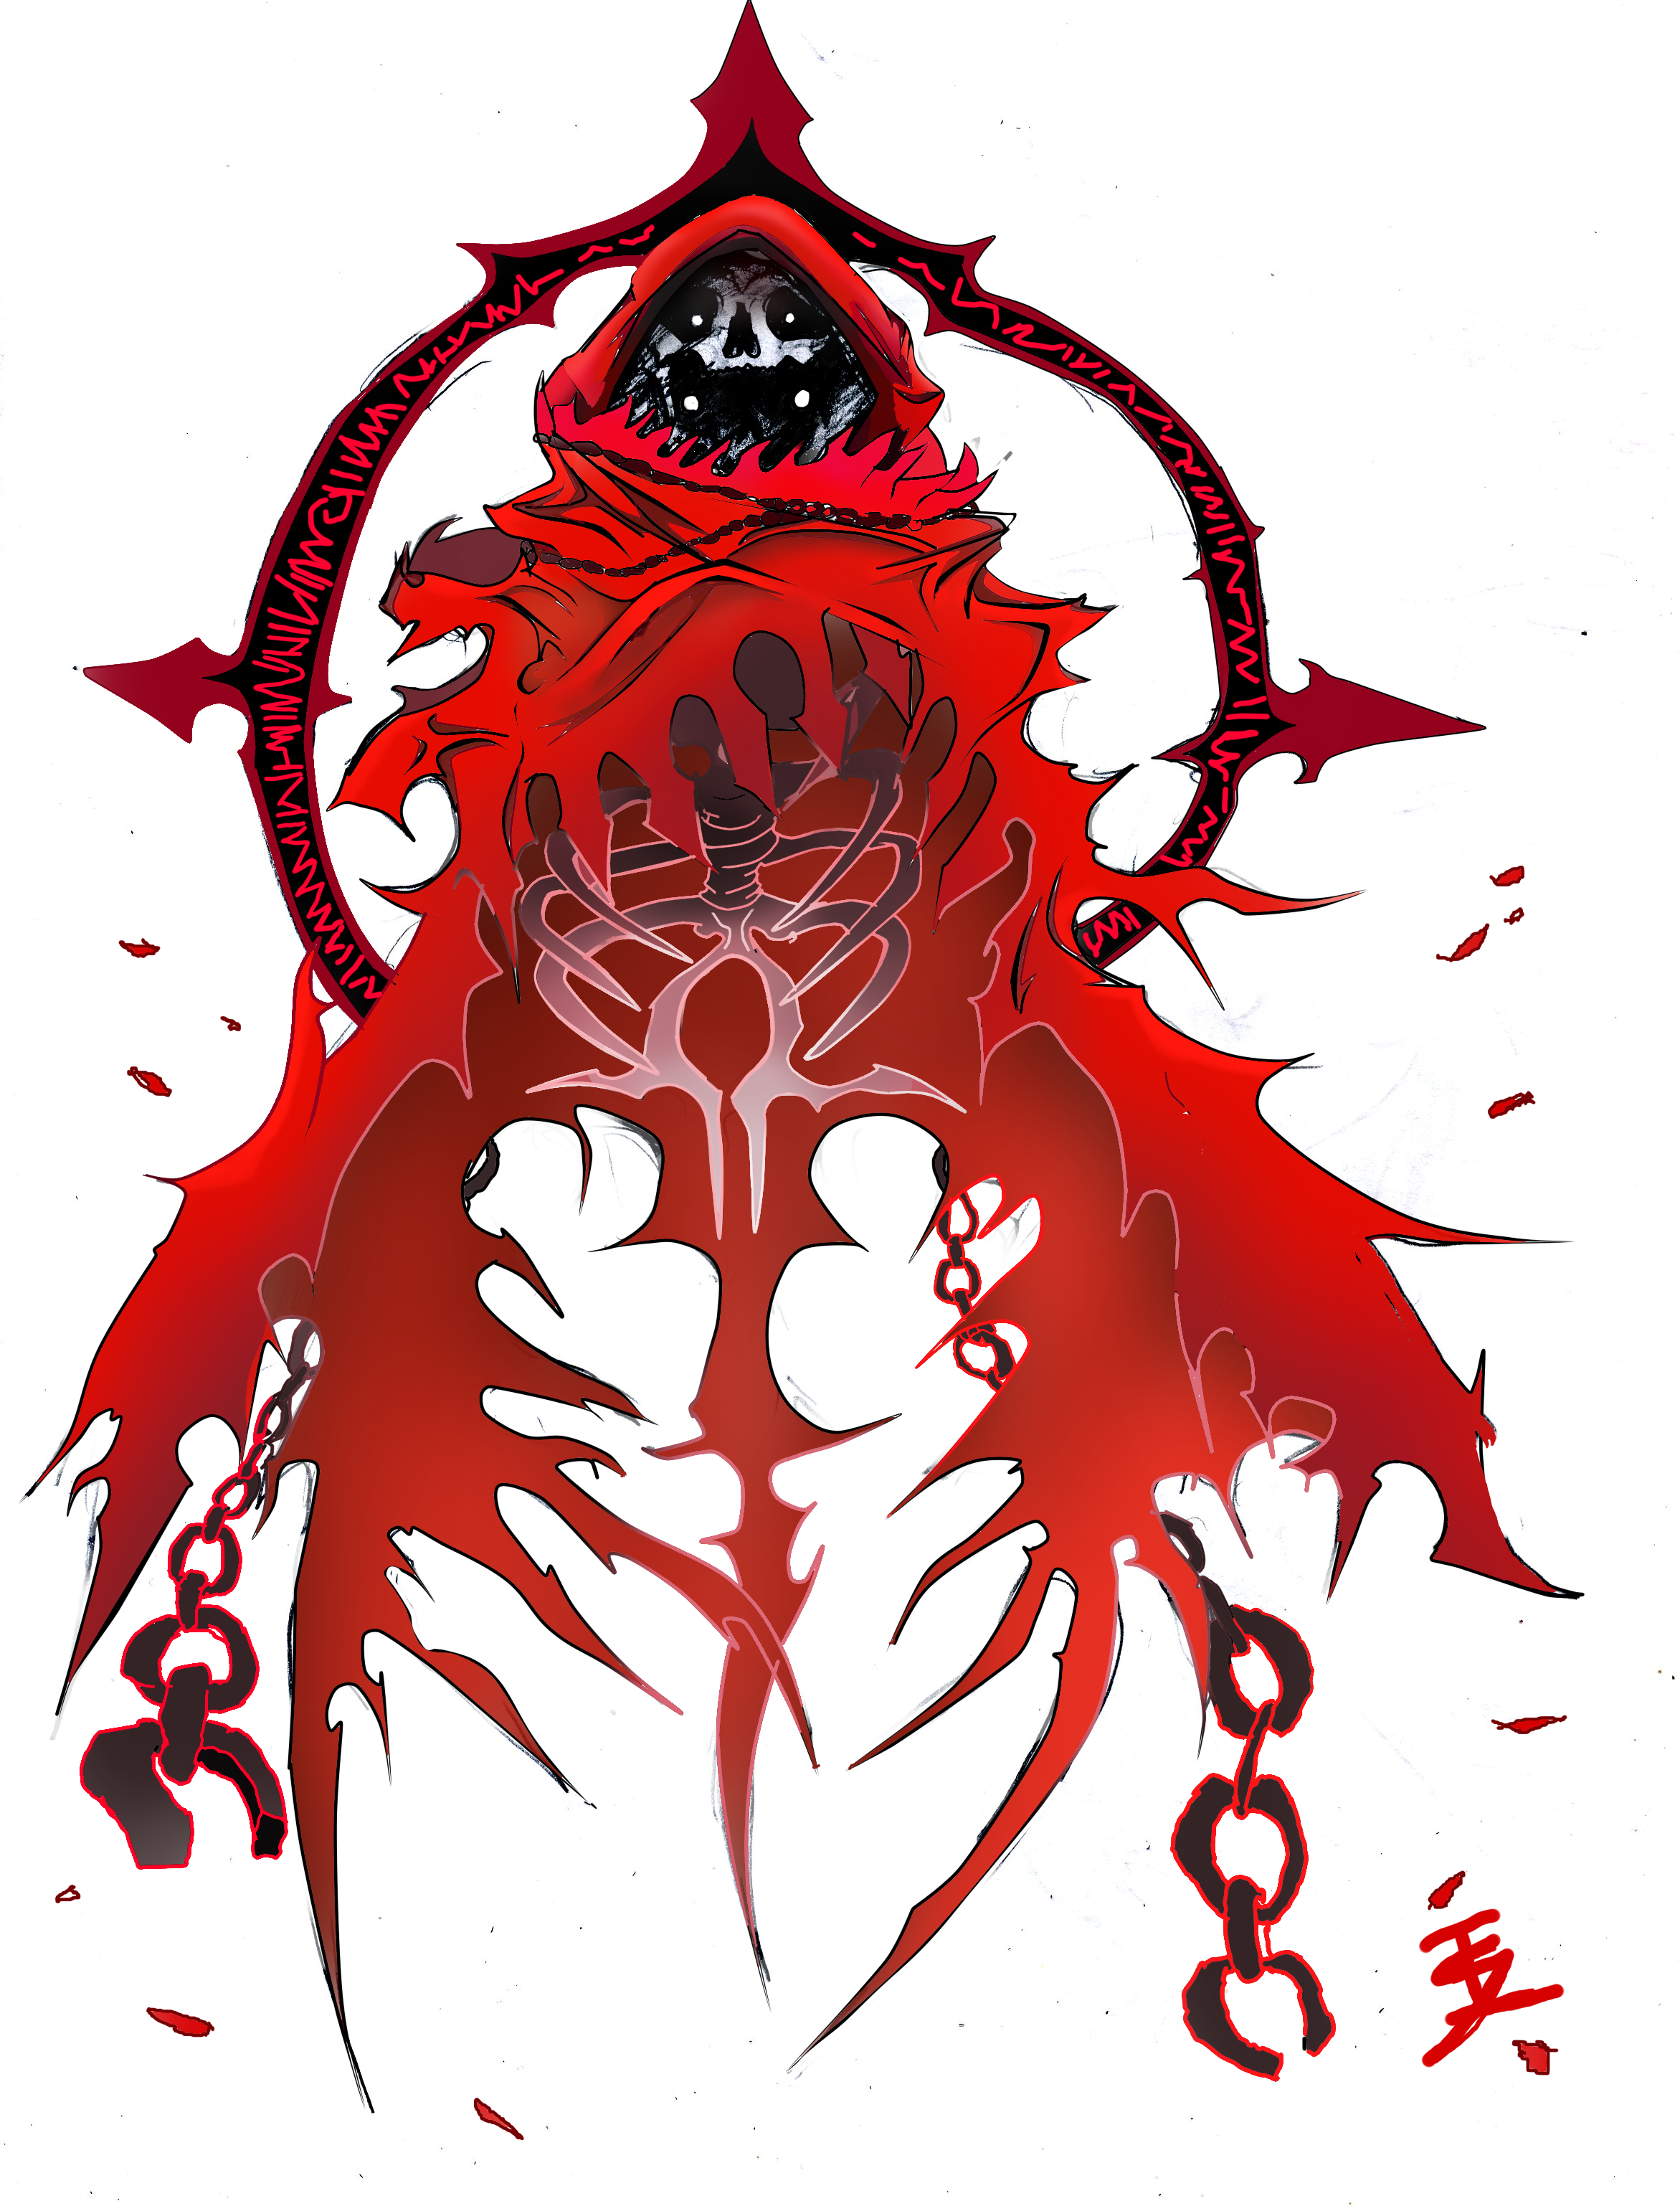 http://fc09.deviantart.net/fs71/f/2011/223/a/8/aka_shiryo___red_ghost___by_teckito-d468tri.png